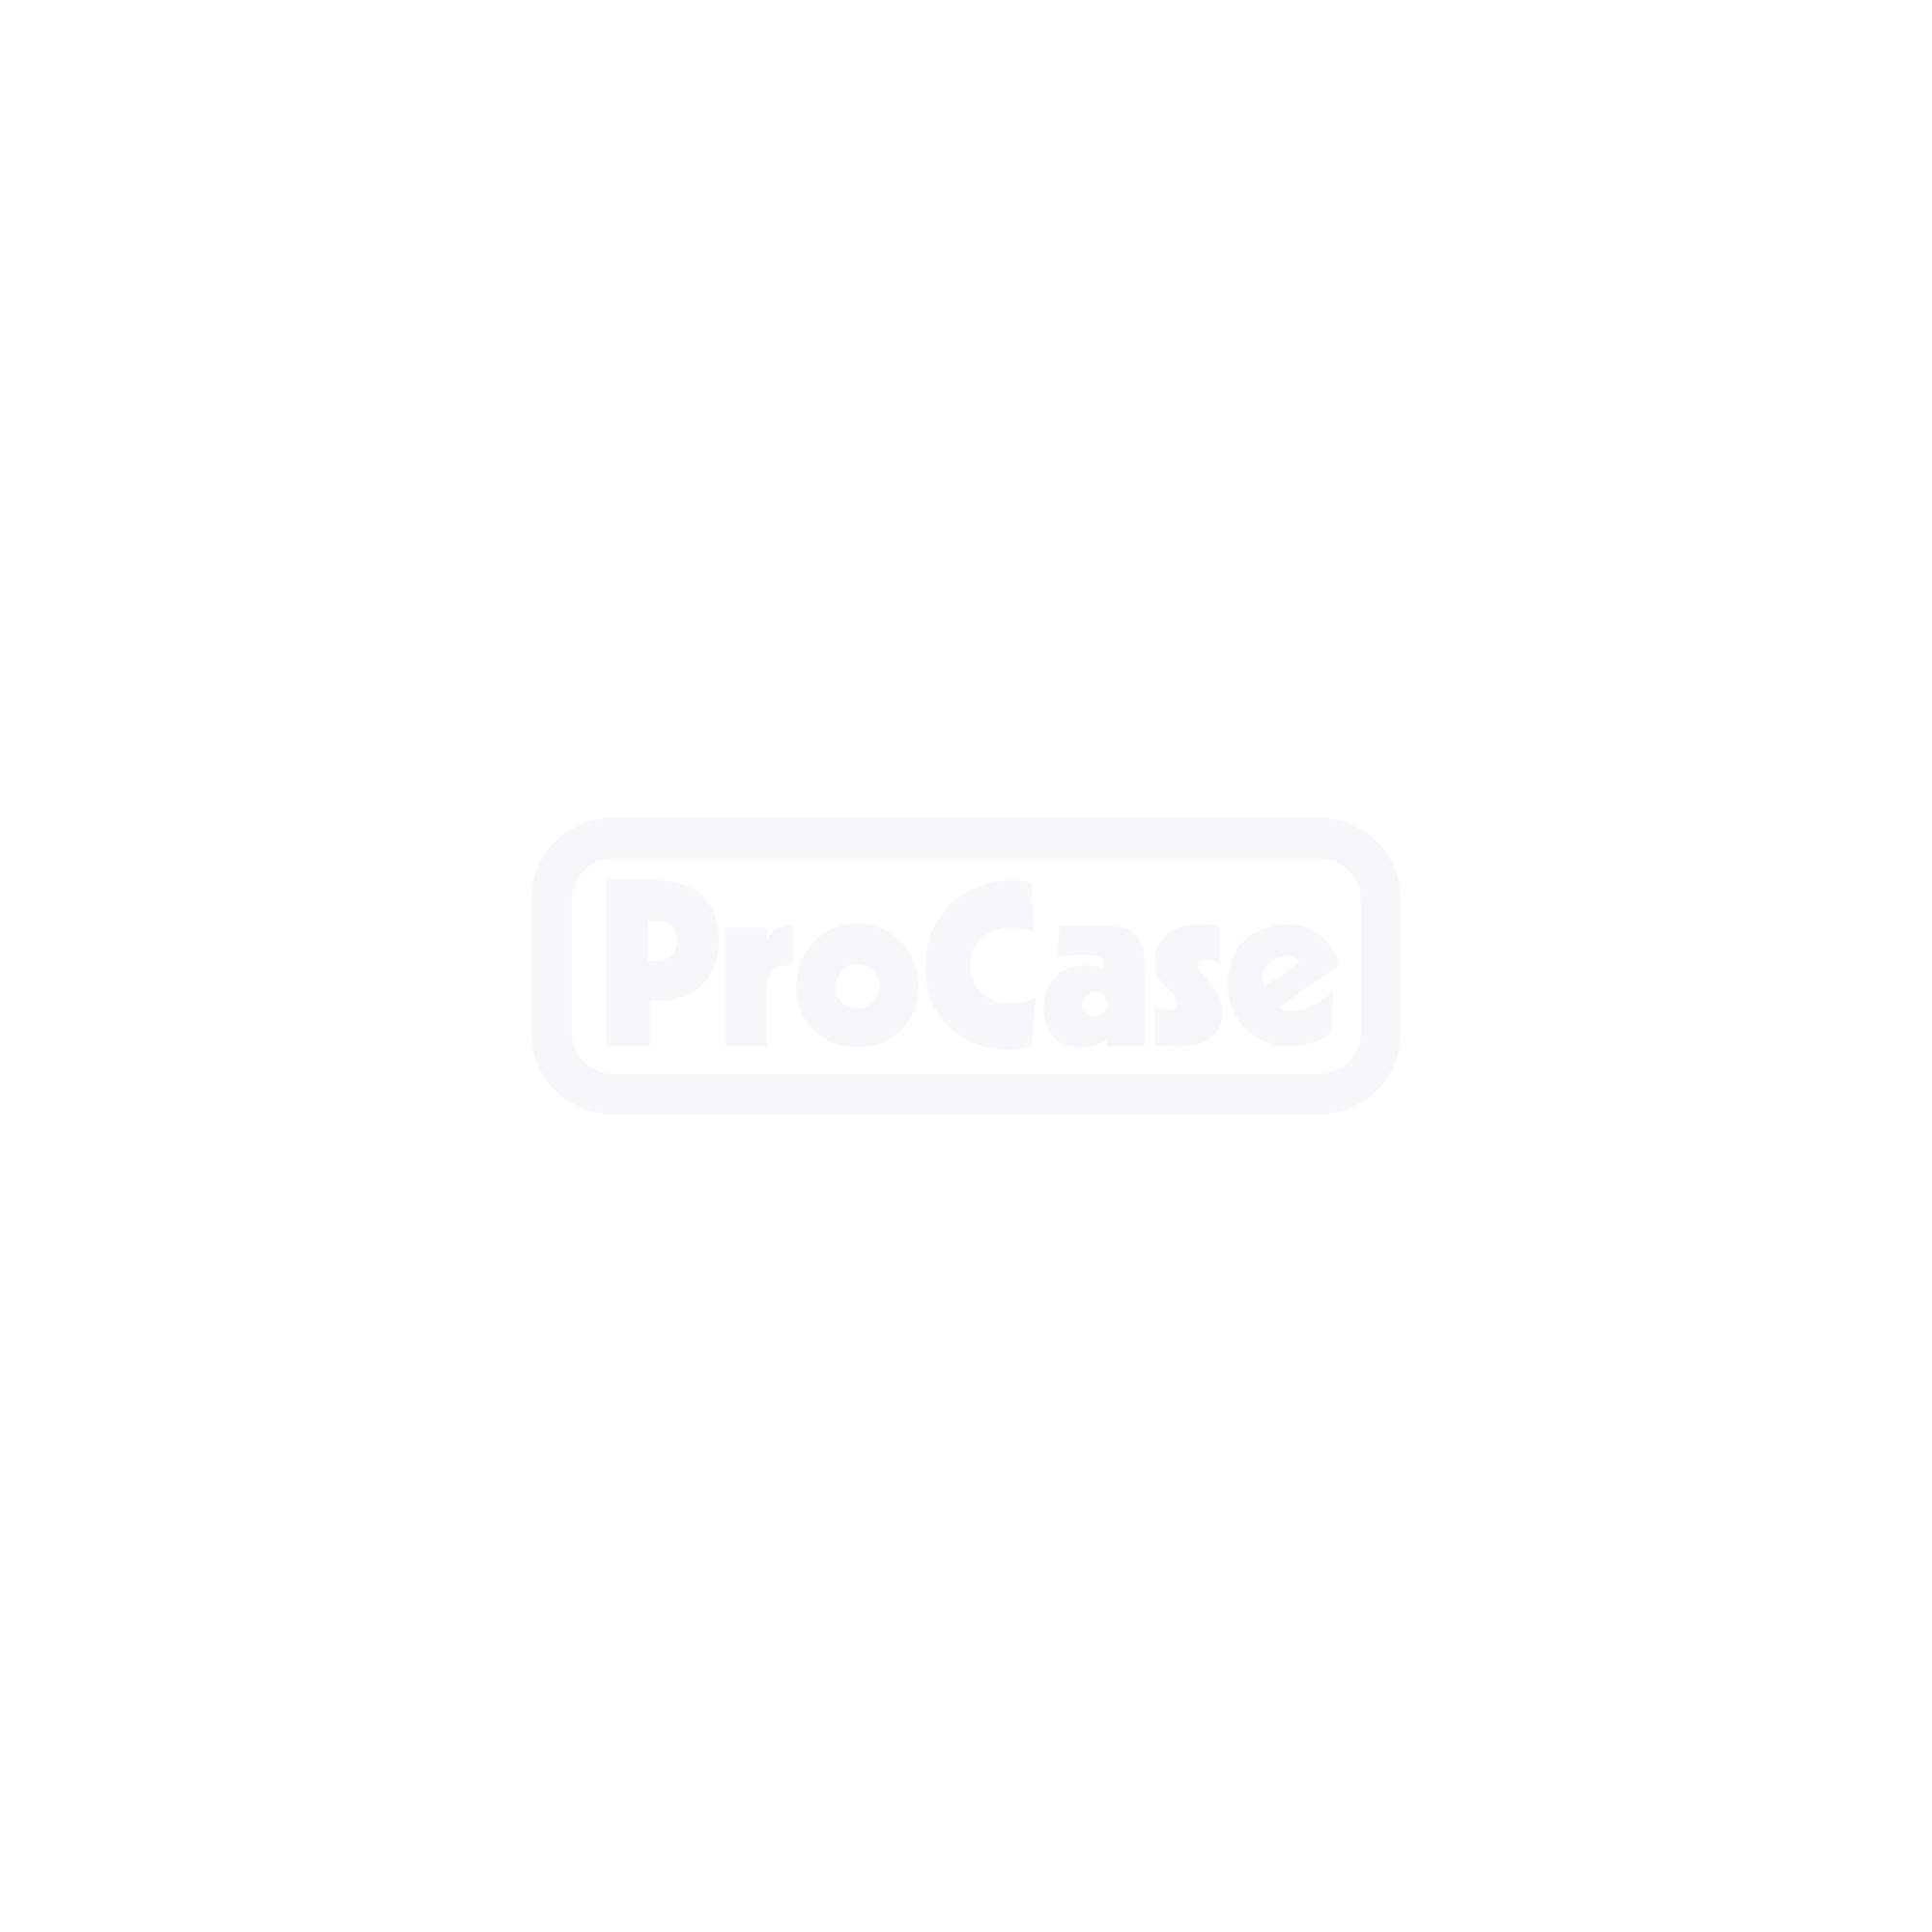 Flightcase für 4x JBLed A7 Zoom / A4 2